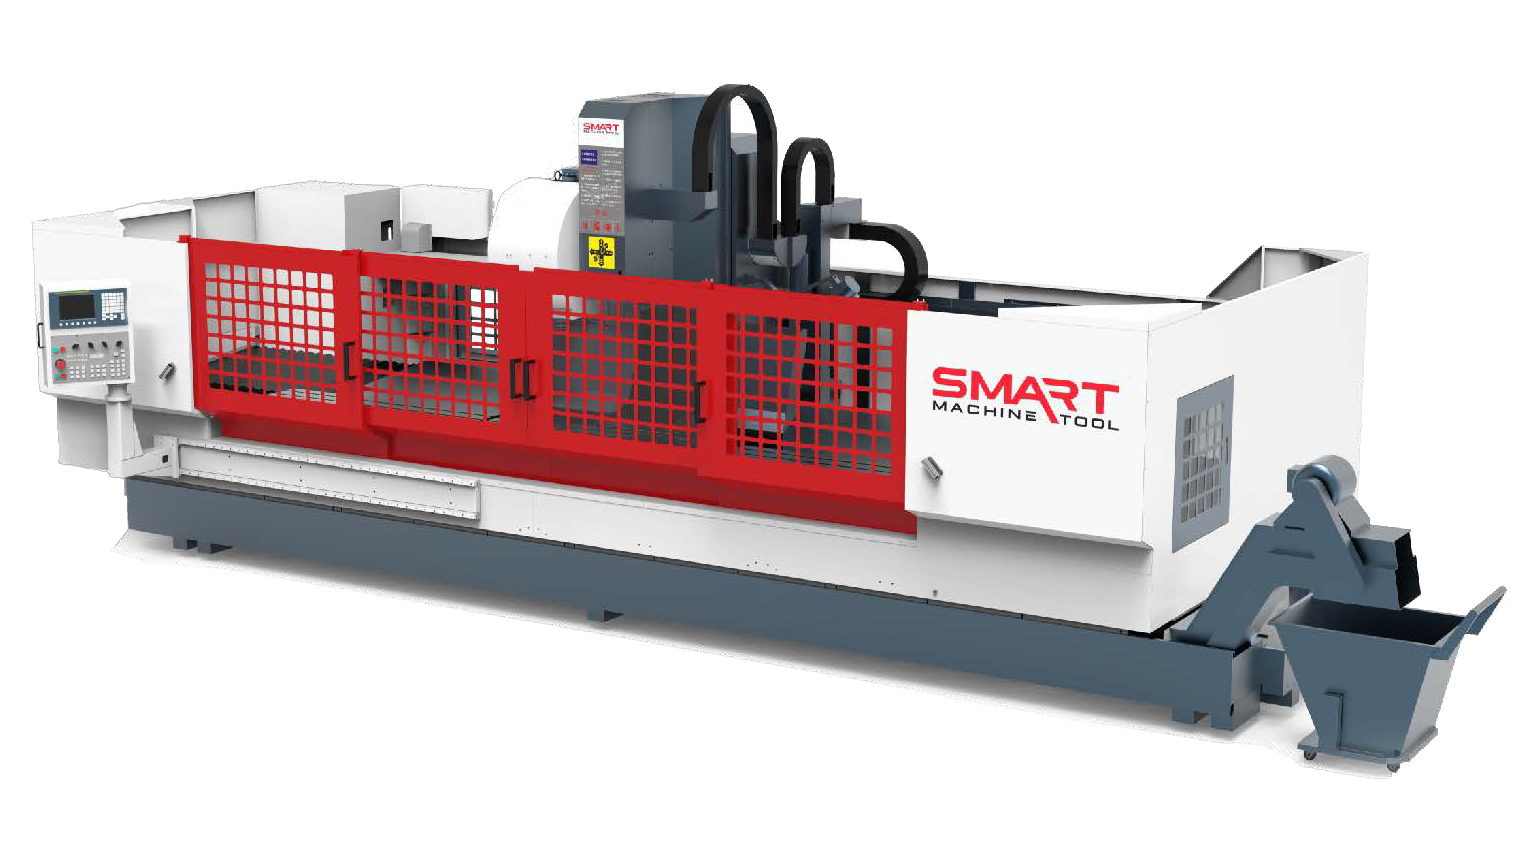 SMART SM40-6500 Drill Tap Machines